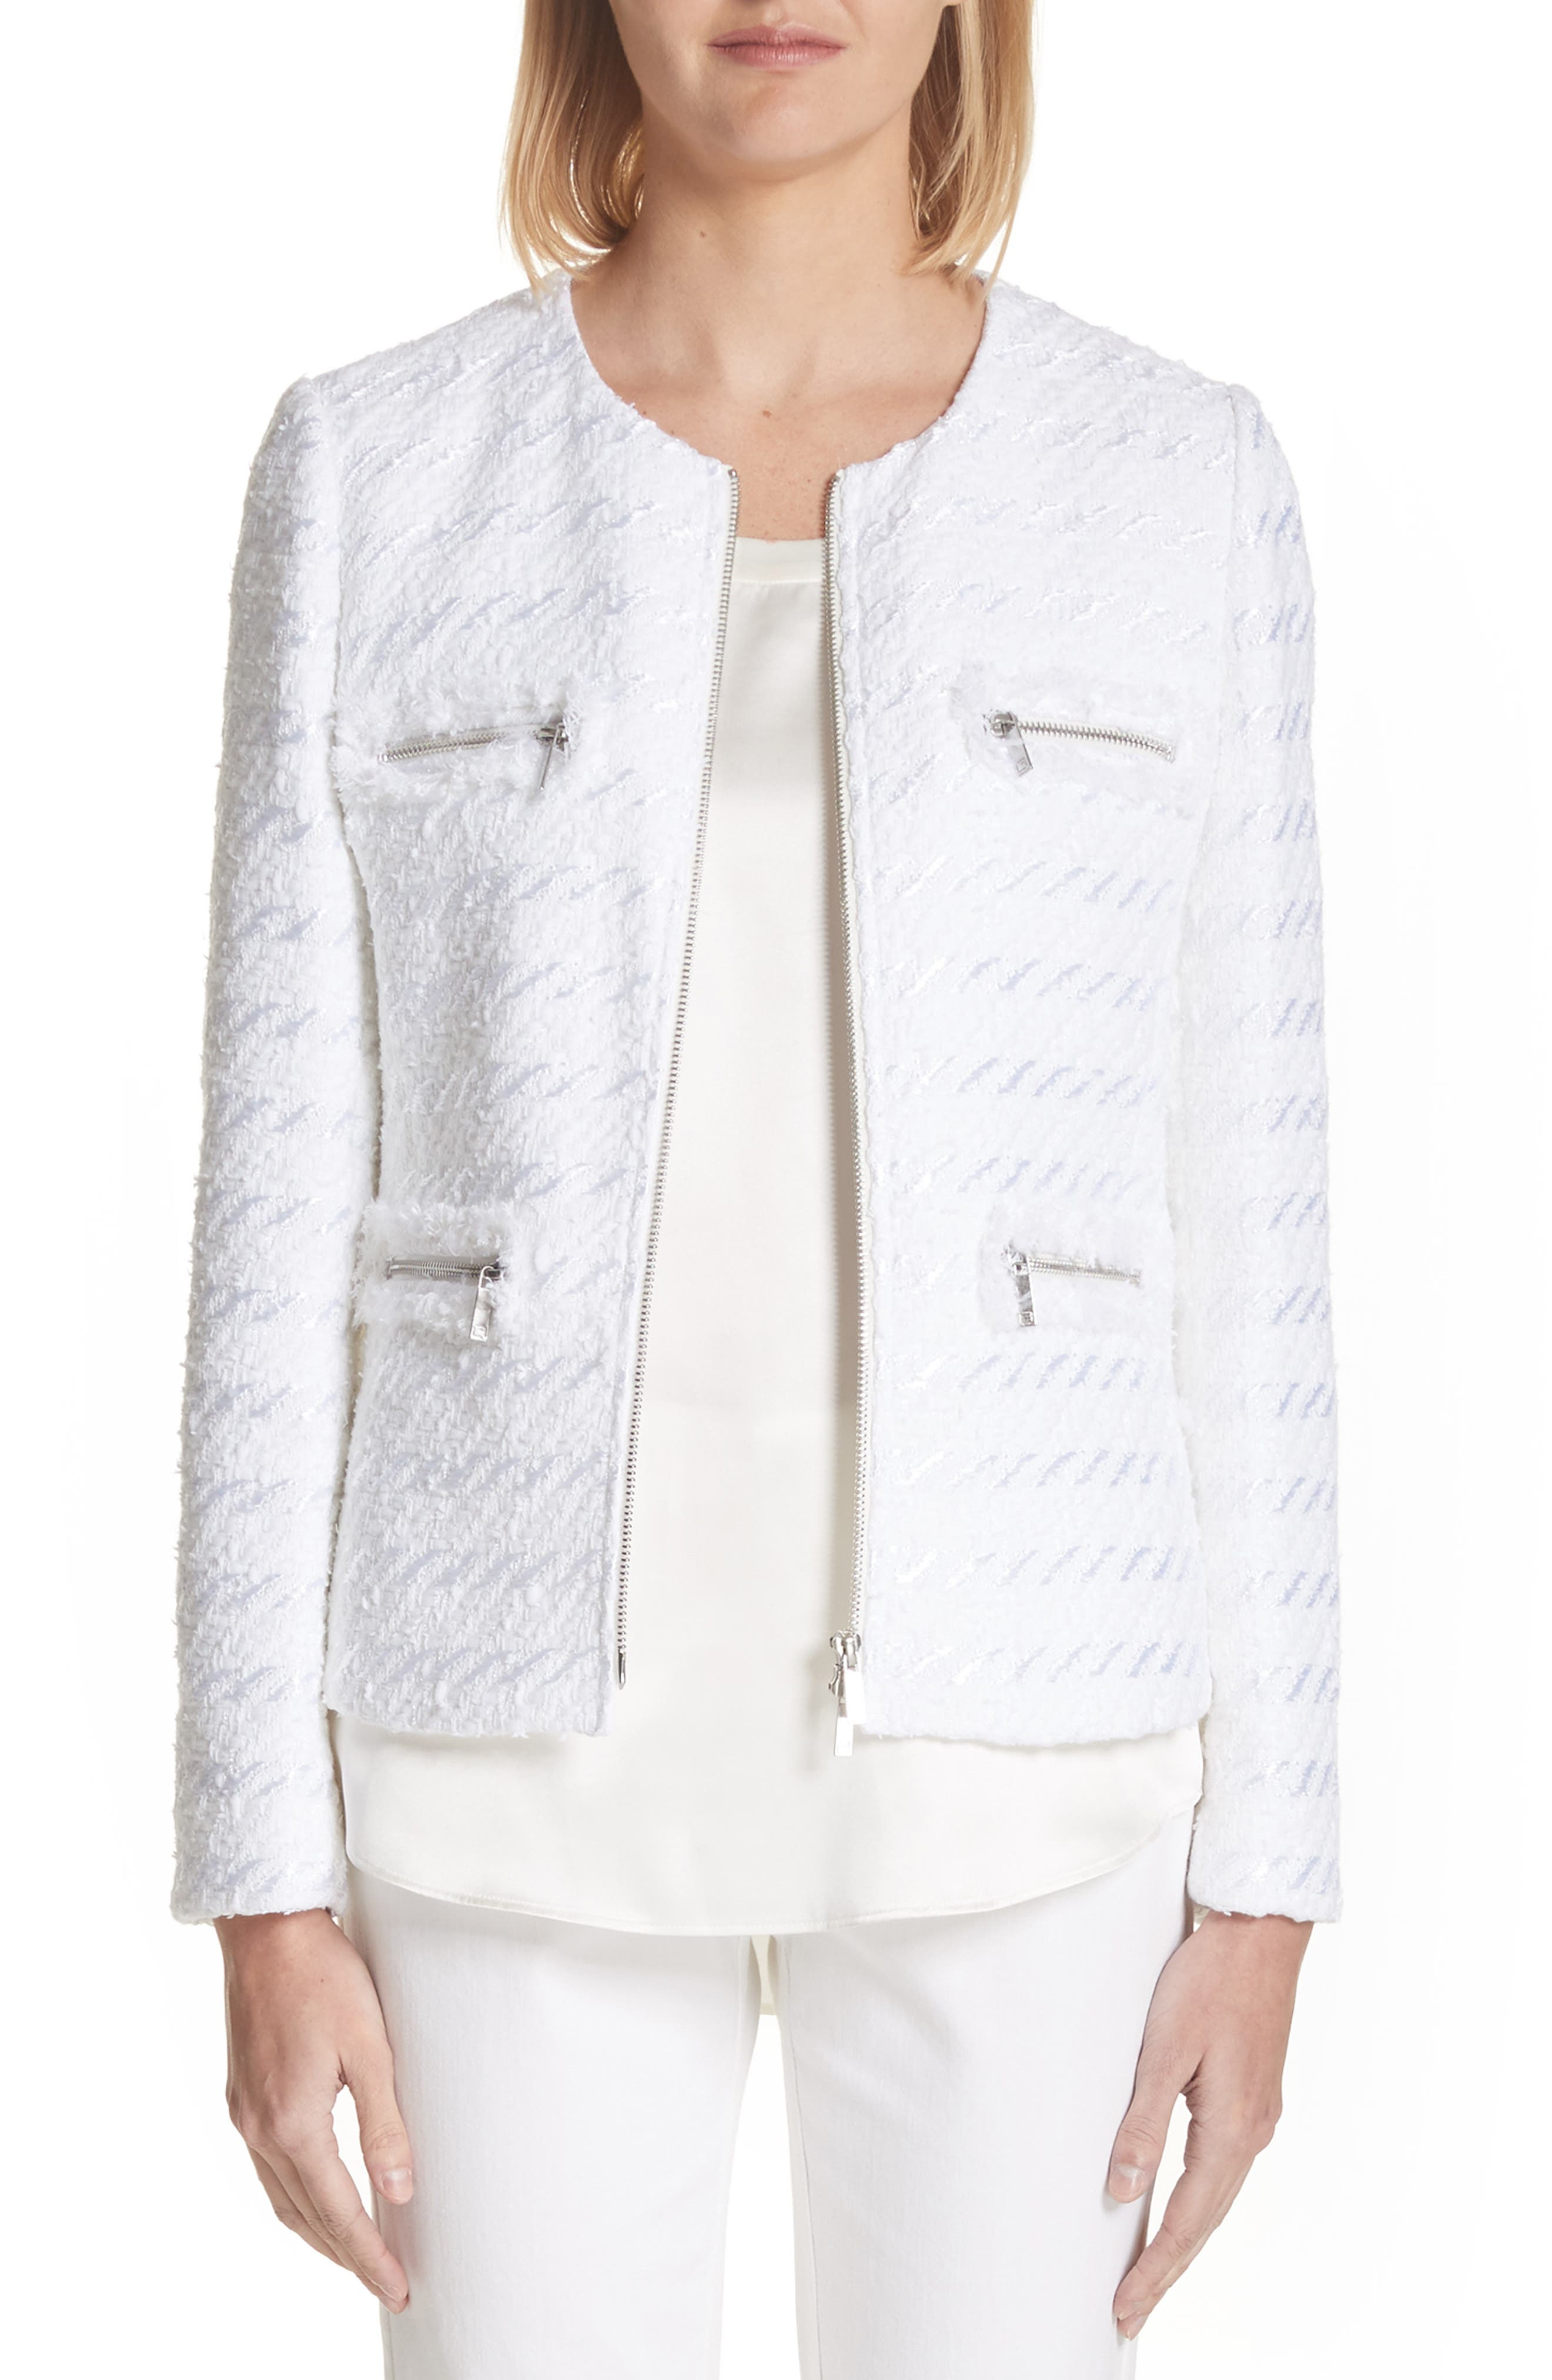 Emelyn Jacquard Jacket,                             Main thumbnail 1, color,                             100